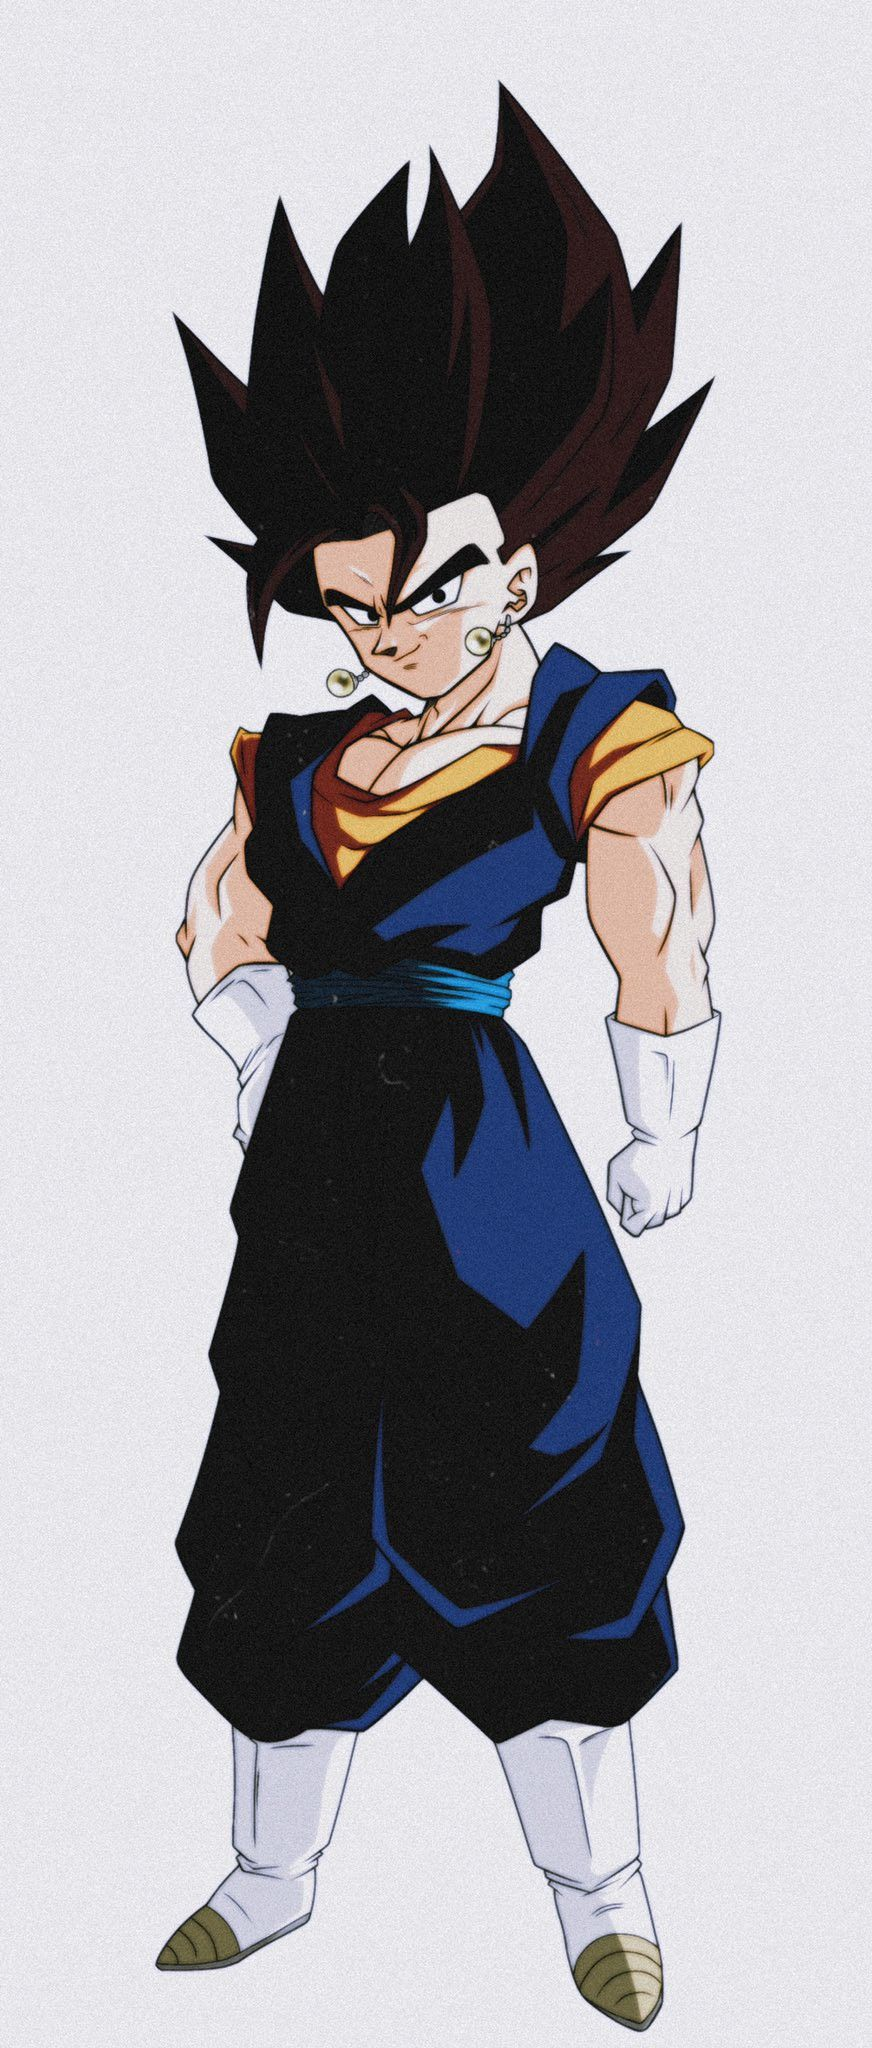 Pin by Stacey Green on vegito in 2020 Anime, Dragon ball